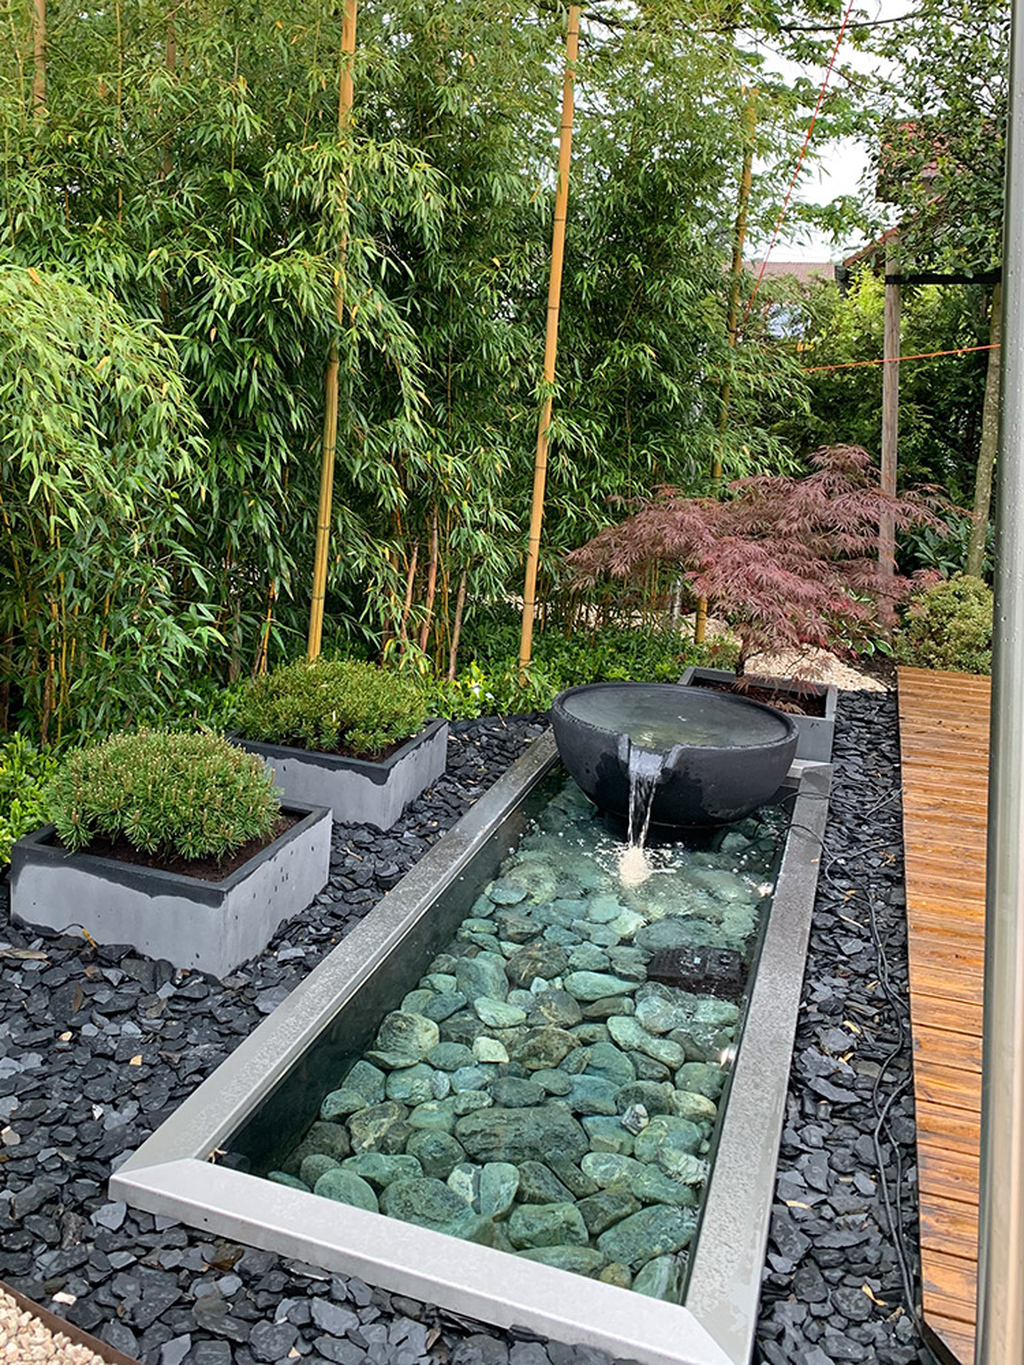 32 Beautiful Zen Garden Design Ideas You Definitely Like In 2020 Water Features In The Garden Zen Garden Design Garden Design